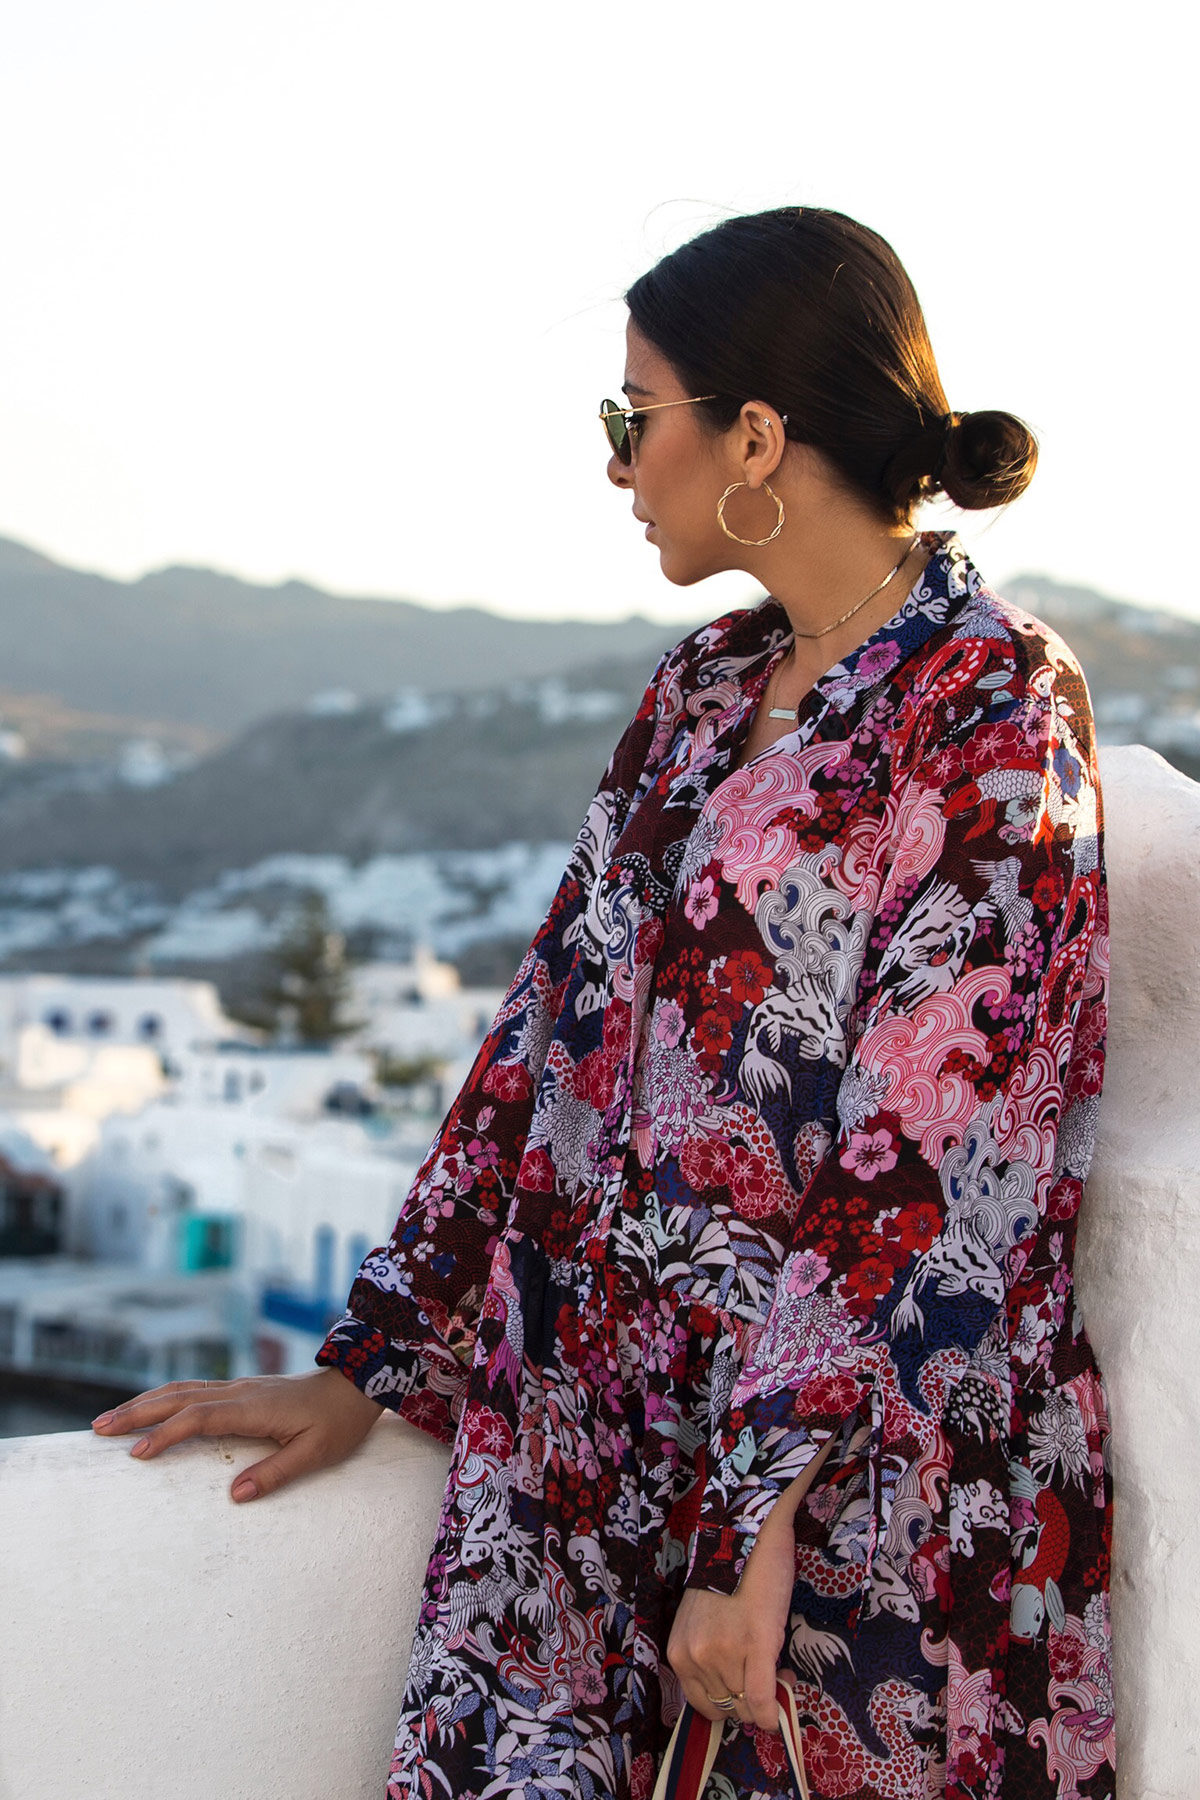 Lazy Day Outfit: How To Look Dressy On A Lazy Day